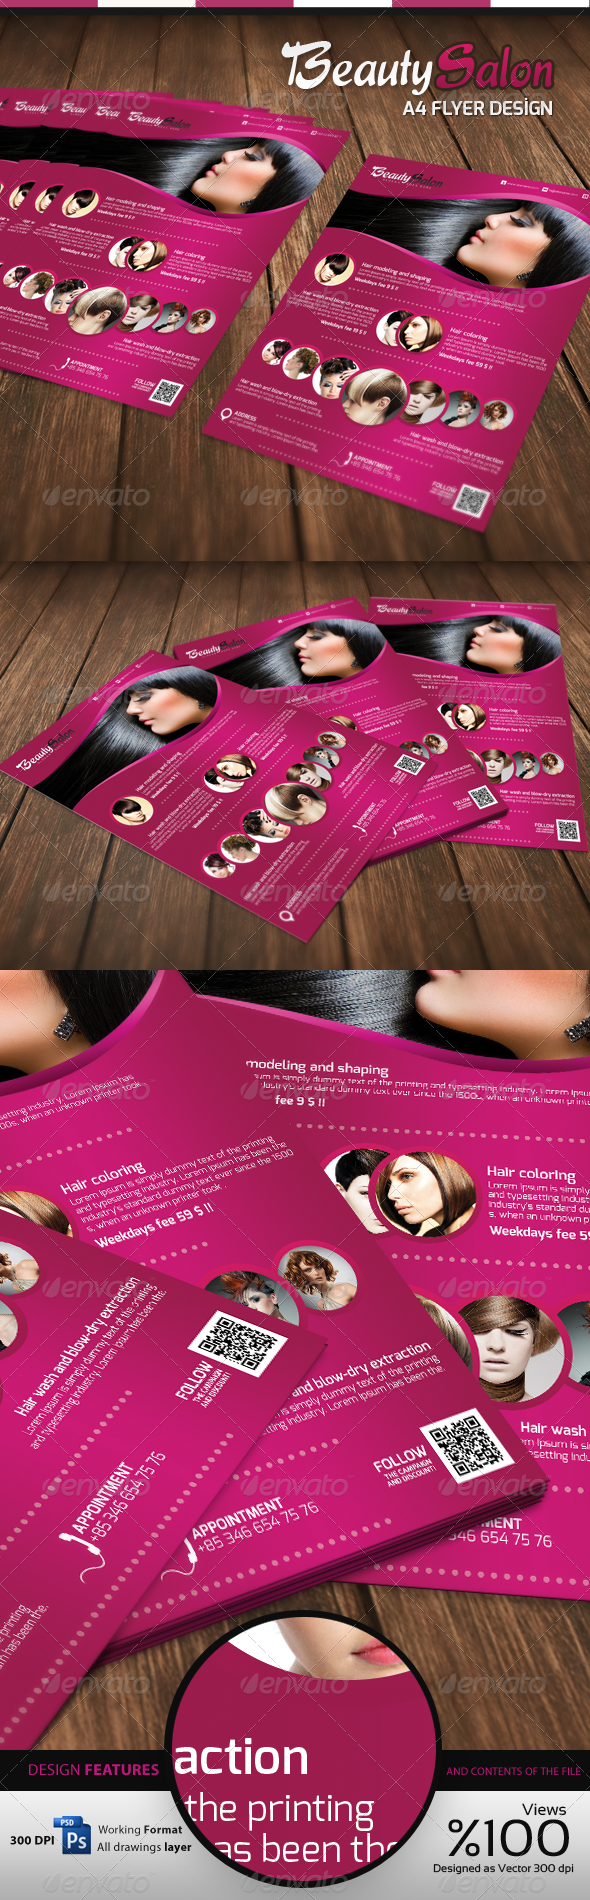 Beauty Salon - A4 Flyer - Commerce Flyers